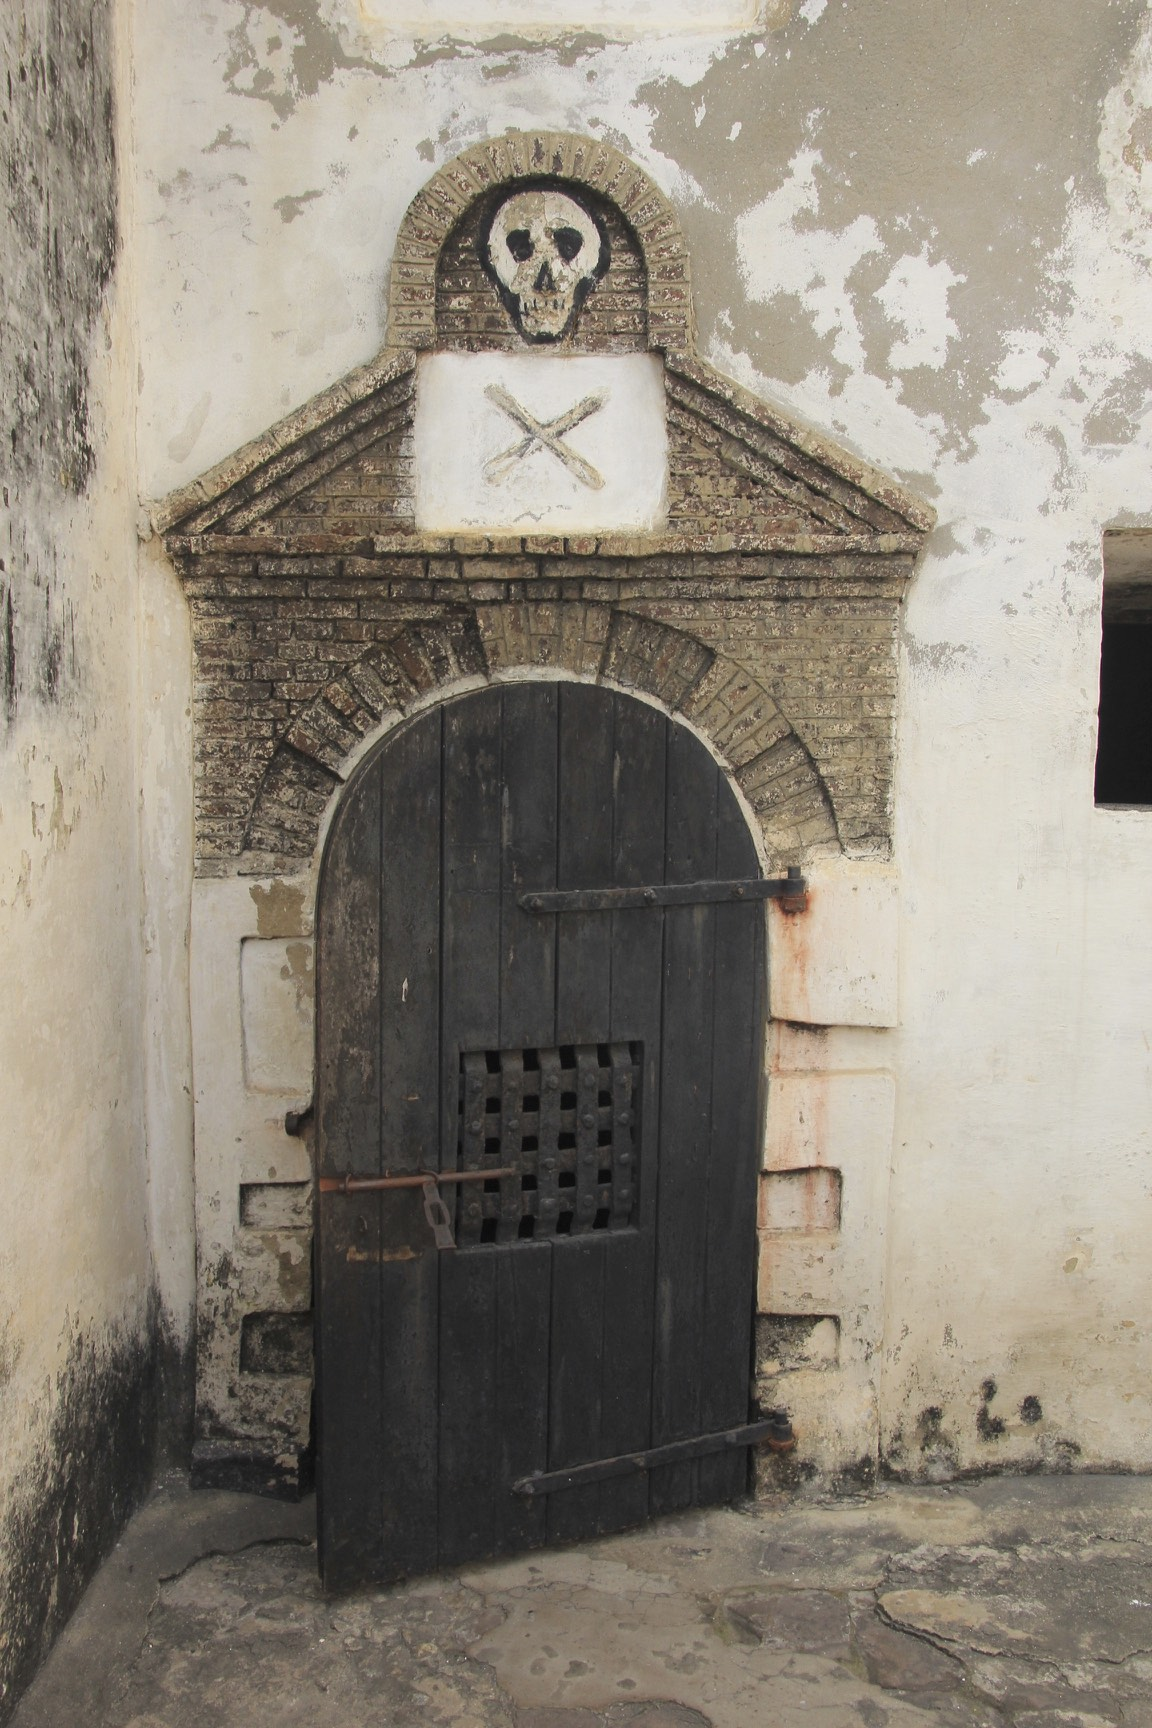 The cell of death where rebellious slaves were starved to death in the Elmina slave castle